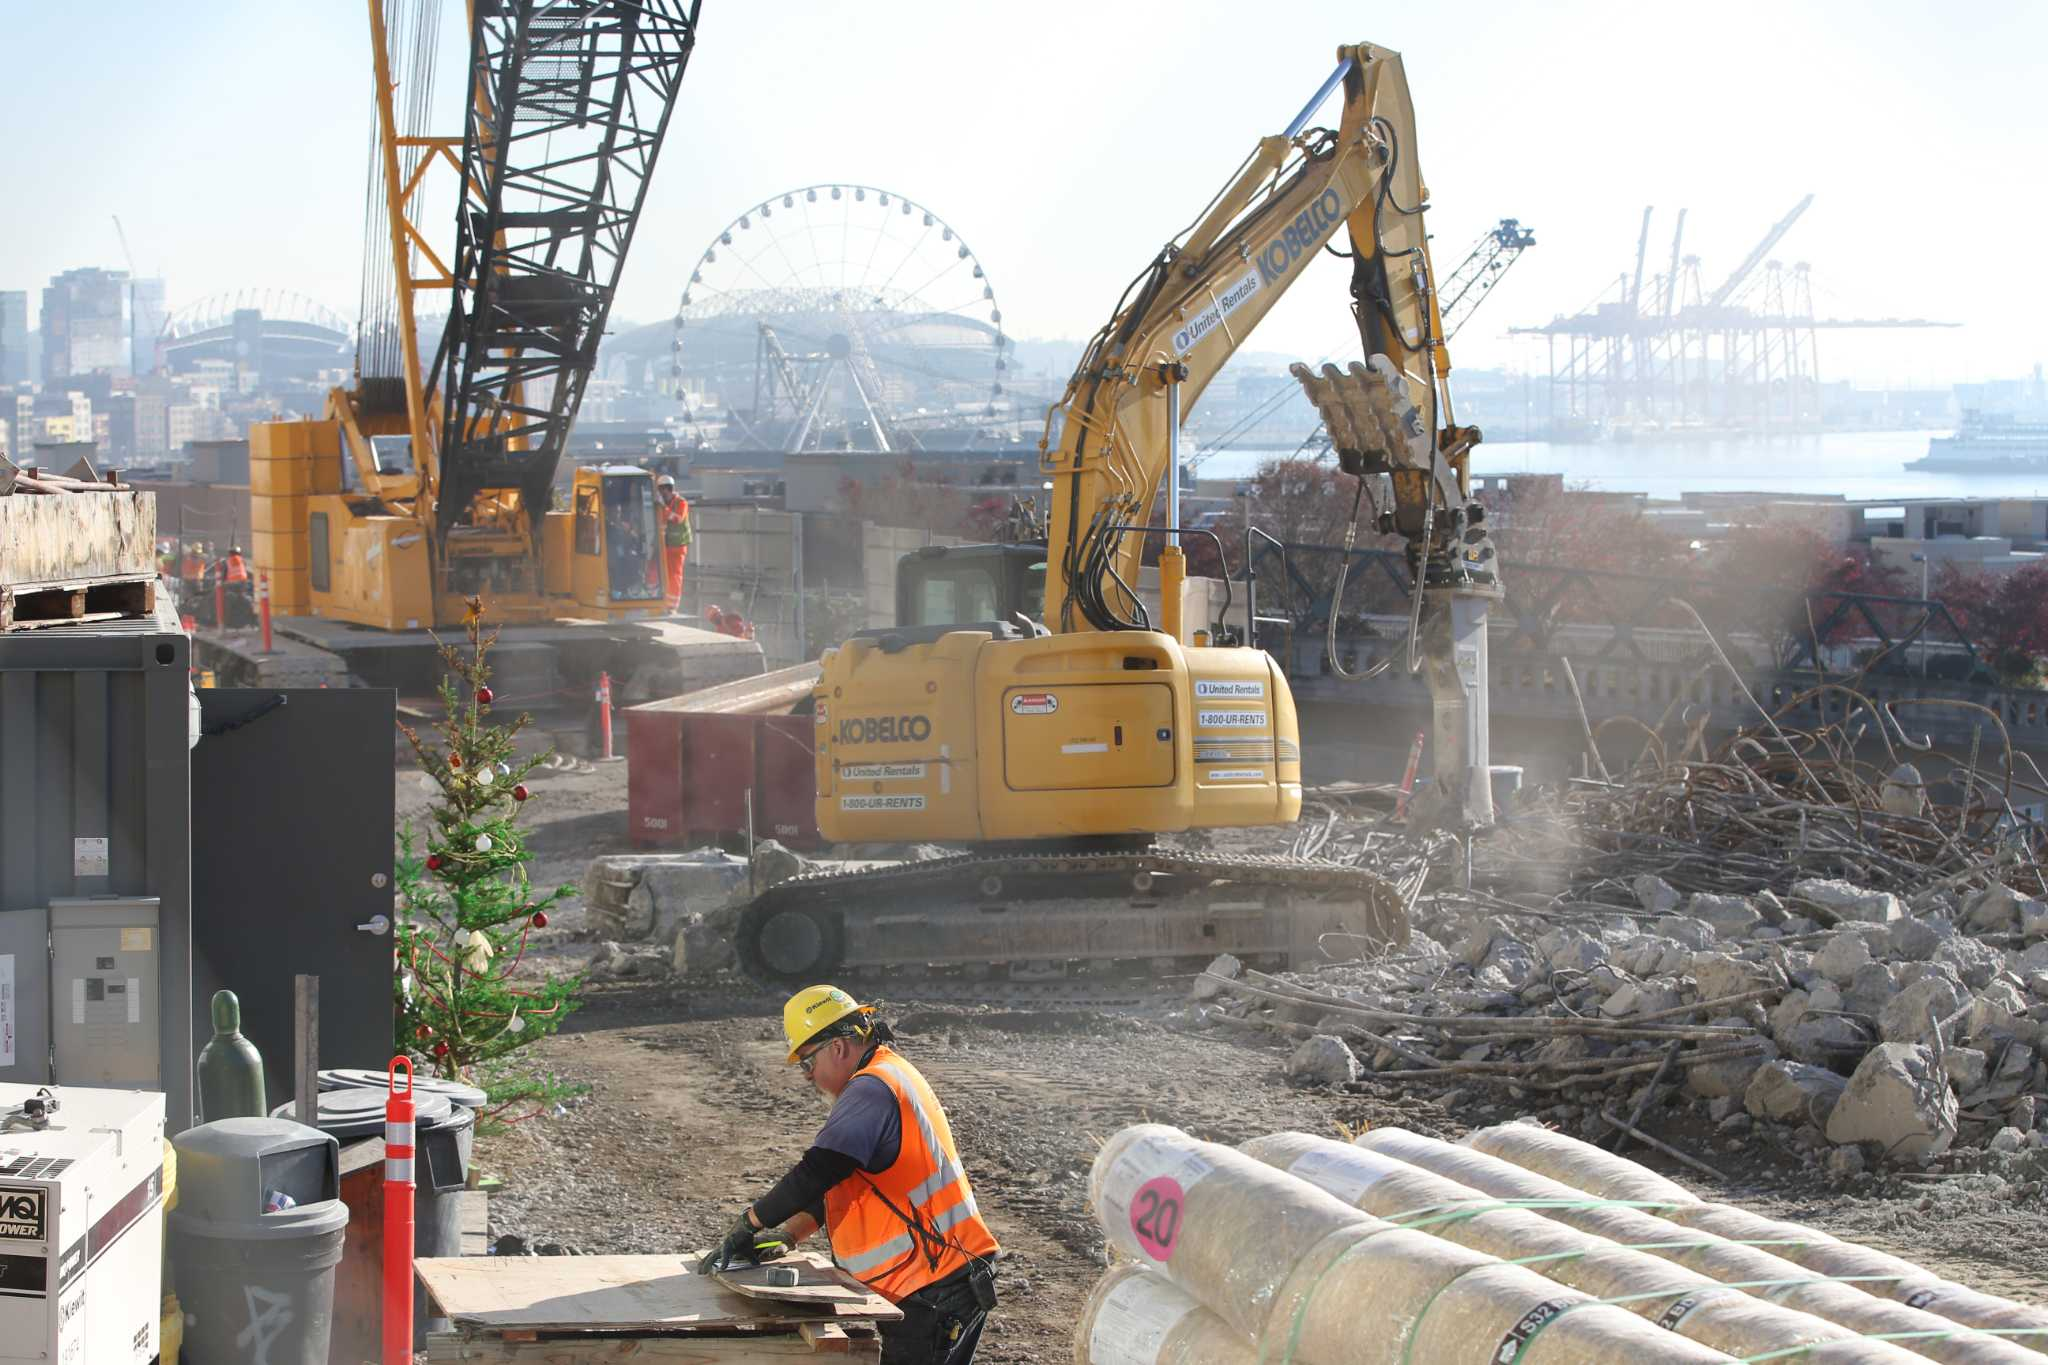 Viaduct's last piece comes down, marks end of months-long demolition project